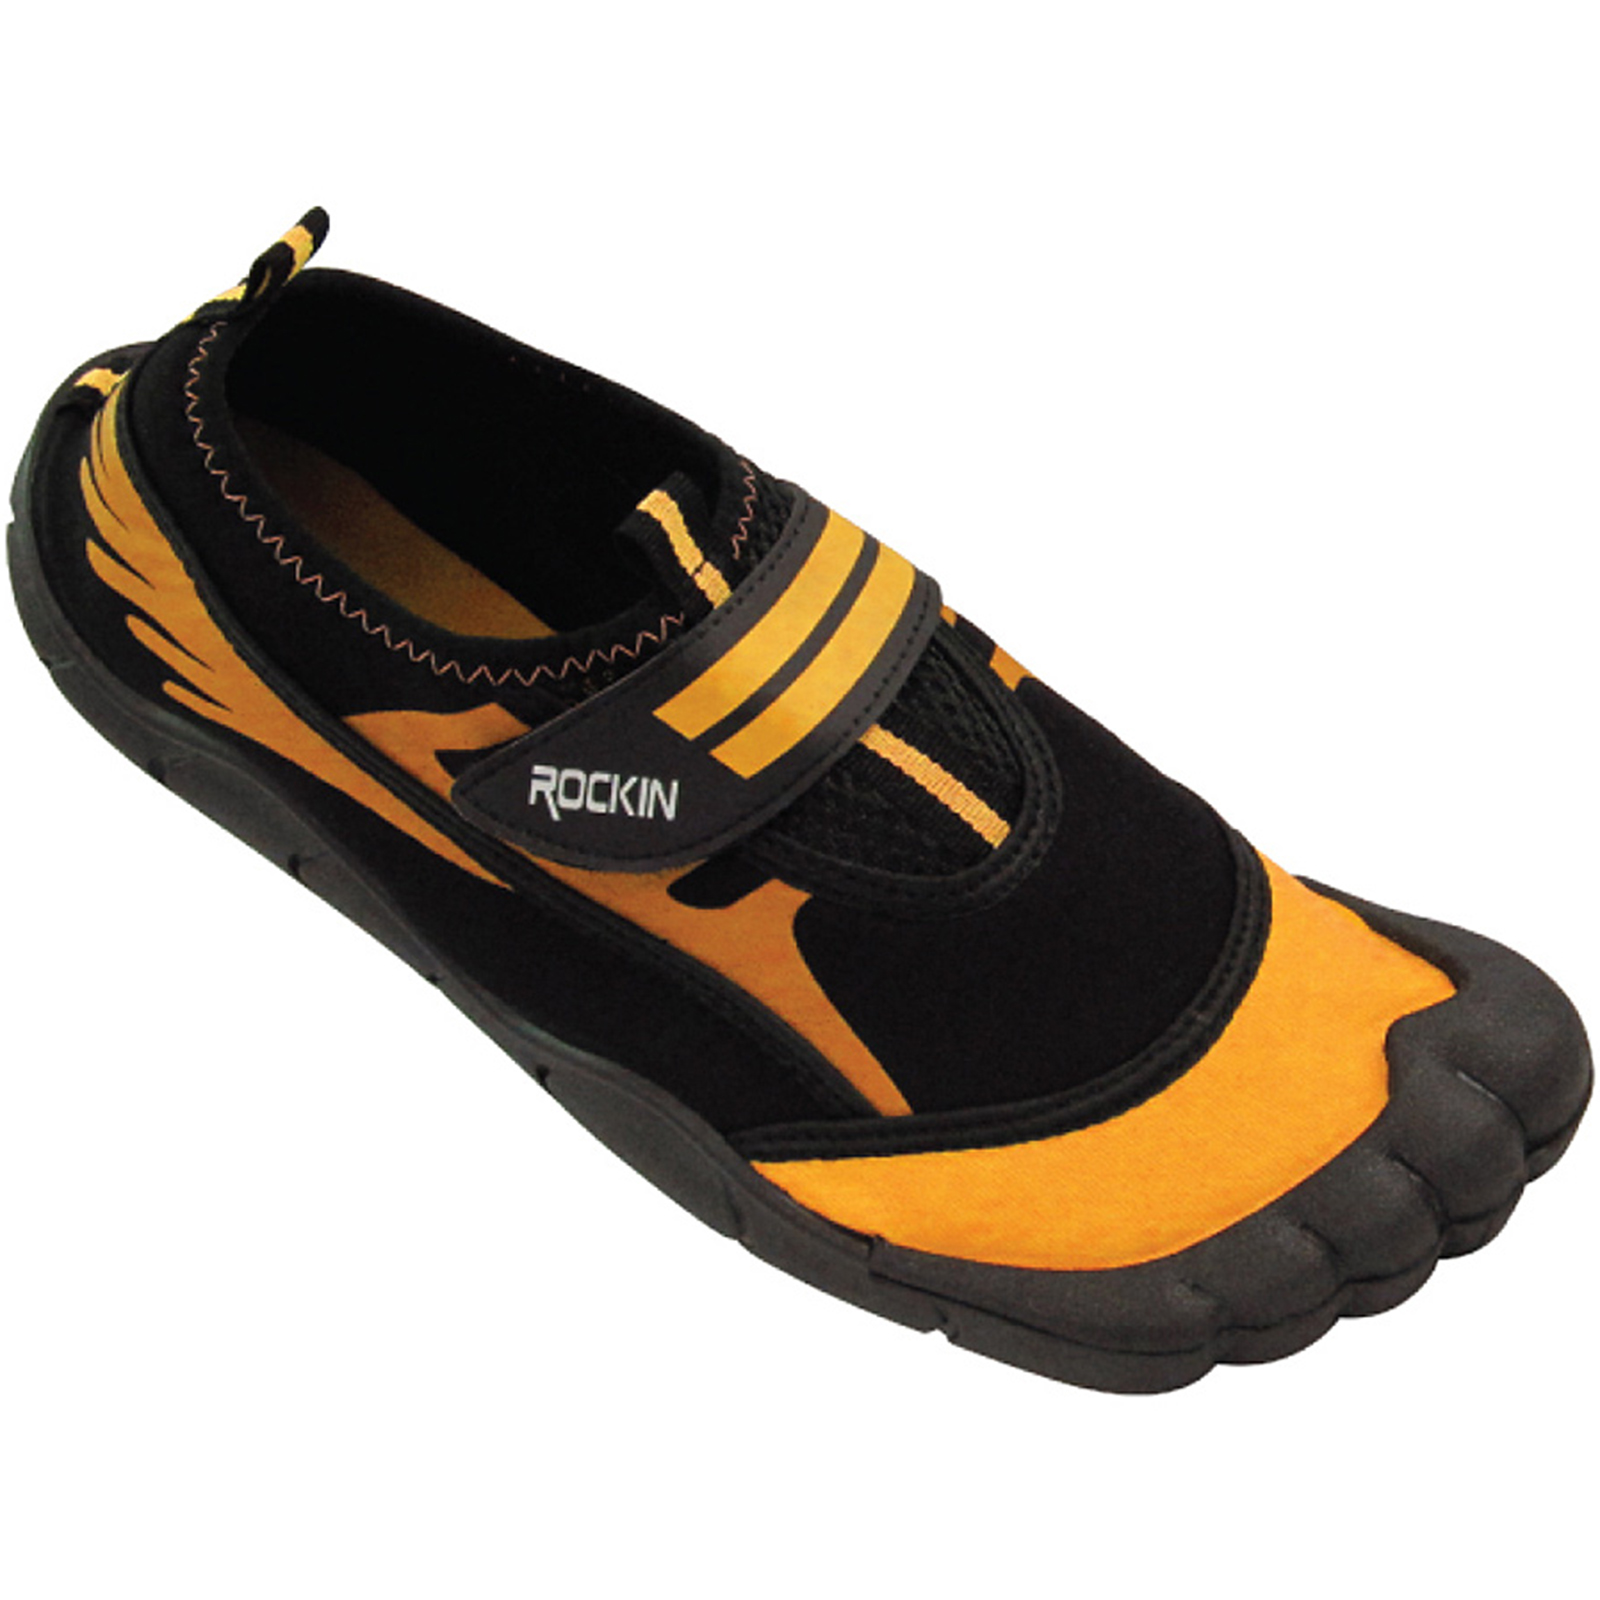 Best Childrens Water Shoes